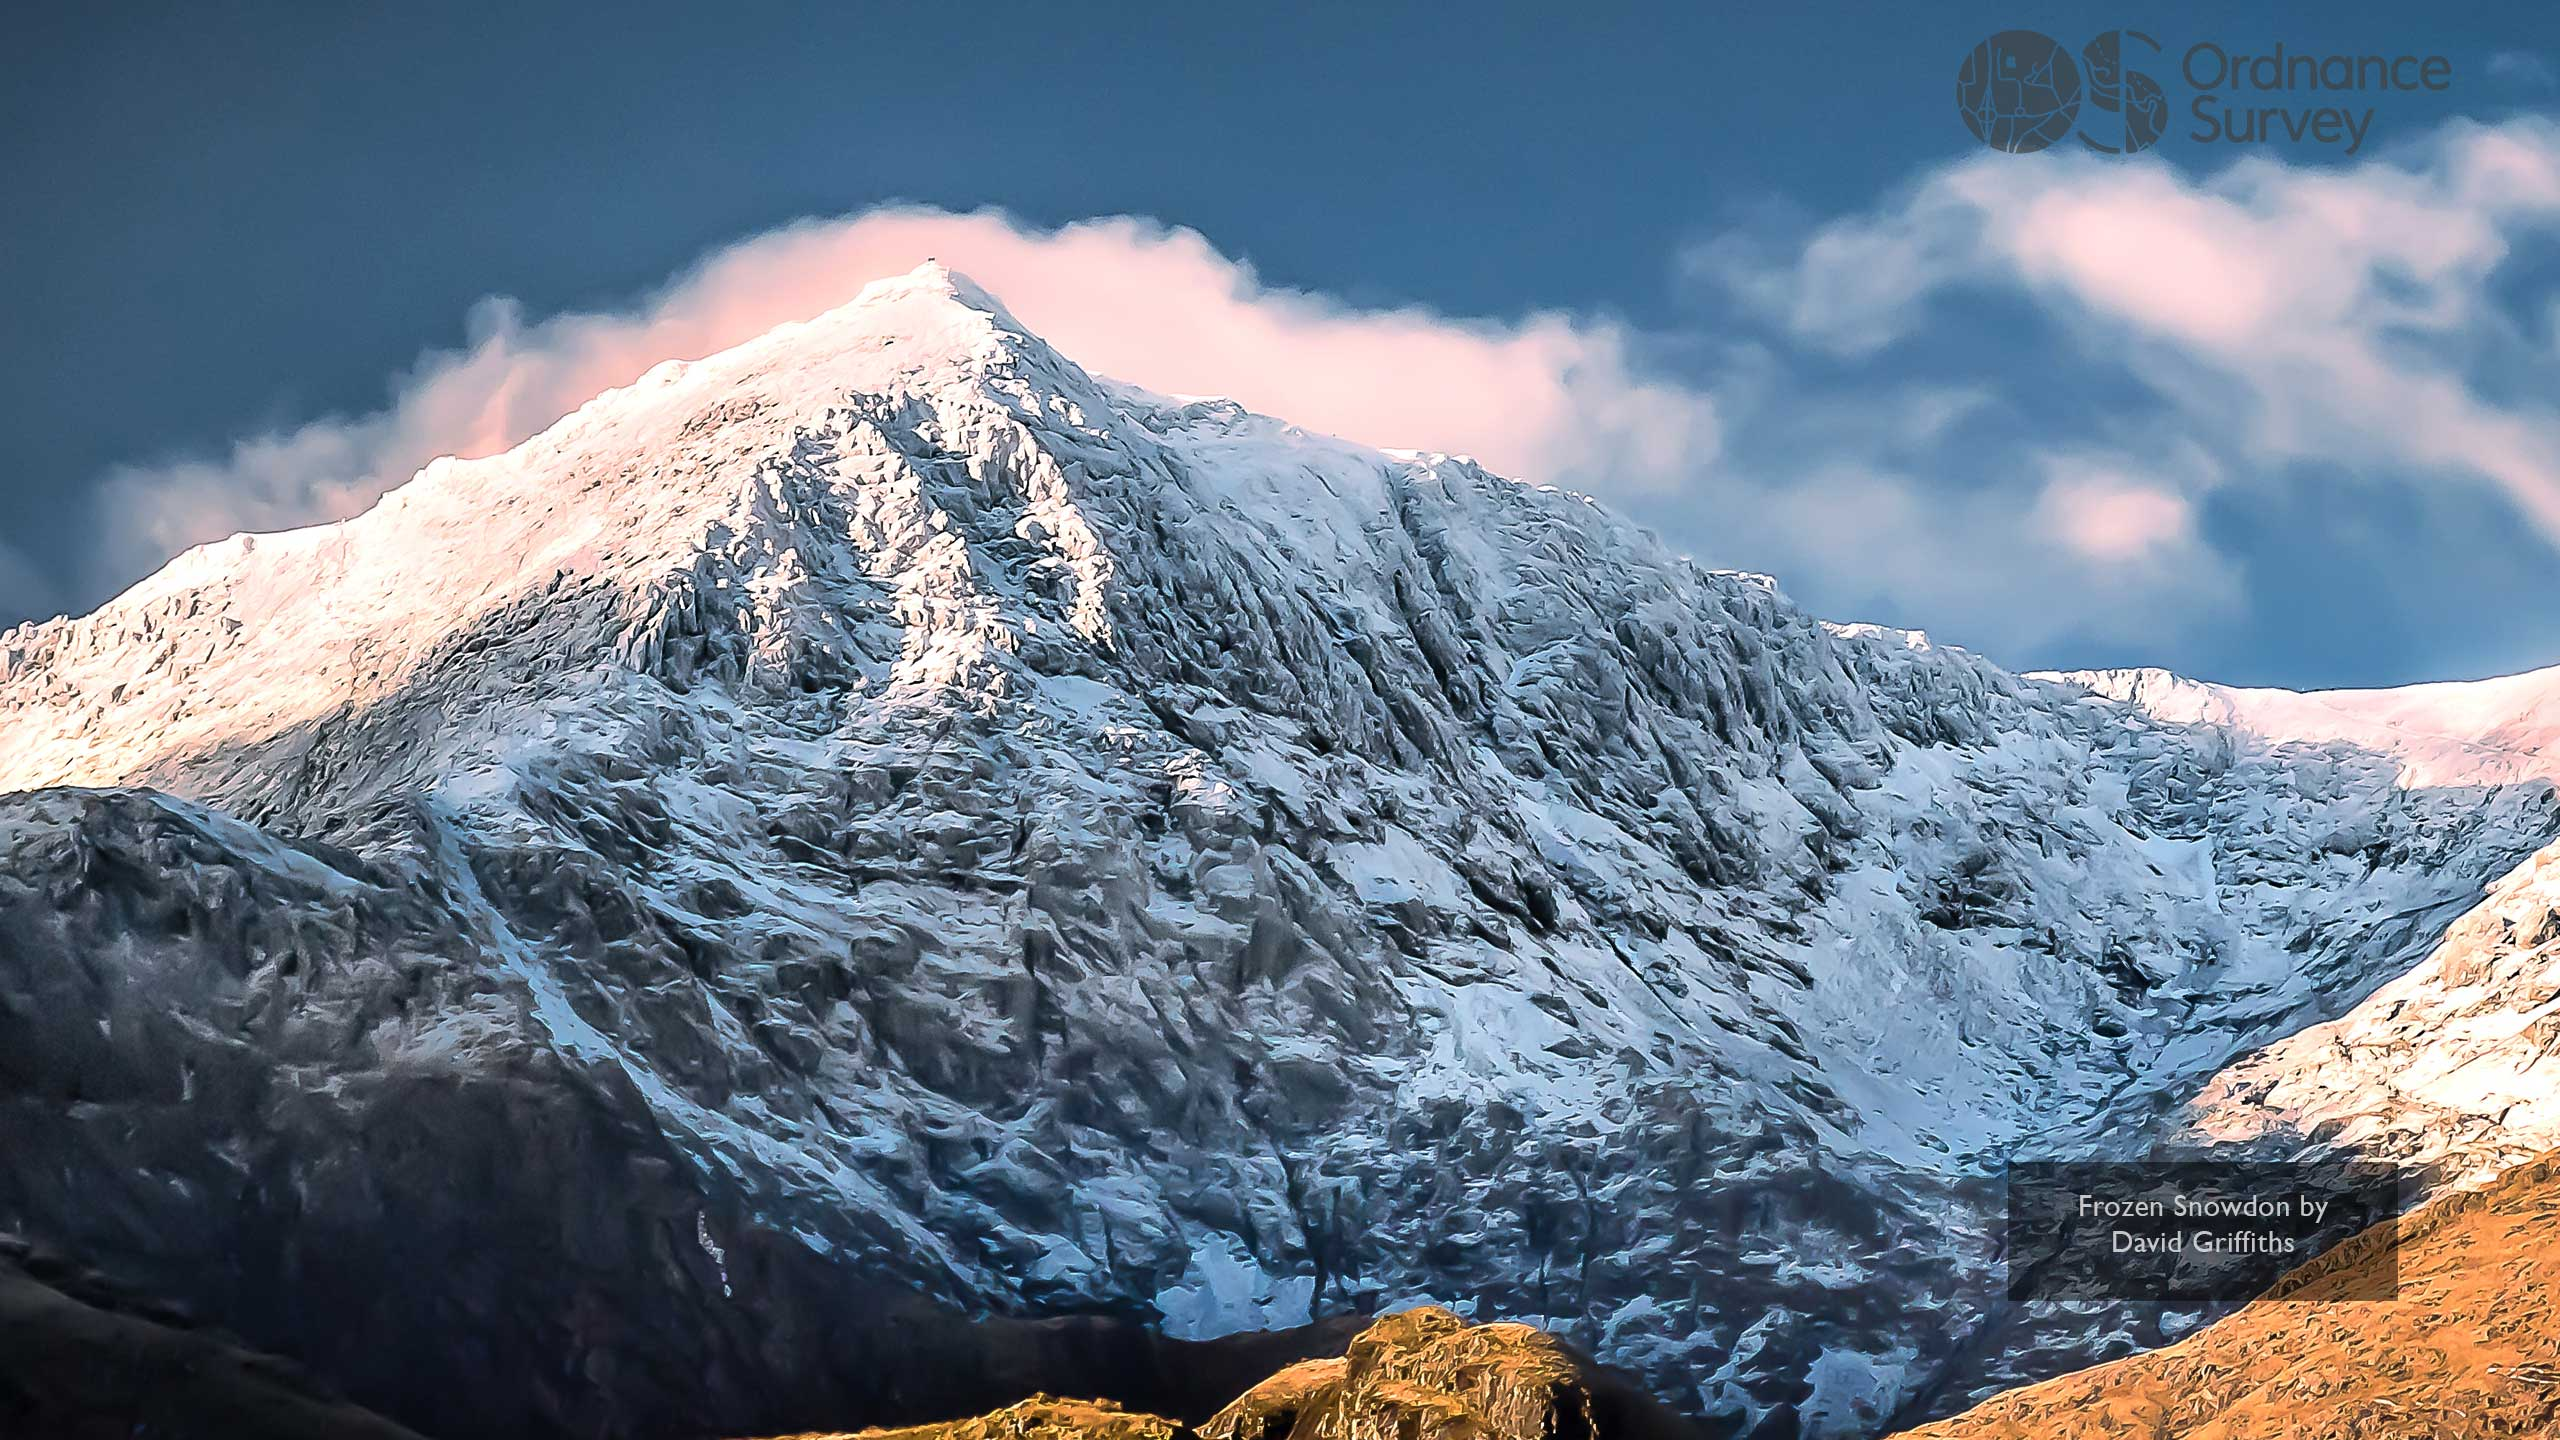 Os Wallpaper Download January 2019 Frozen Snowdon By